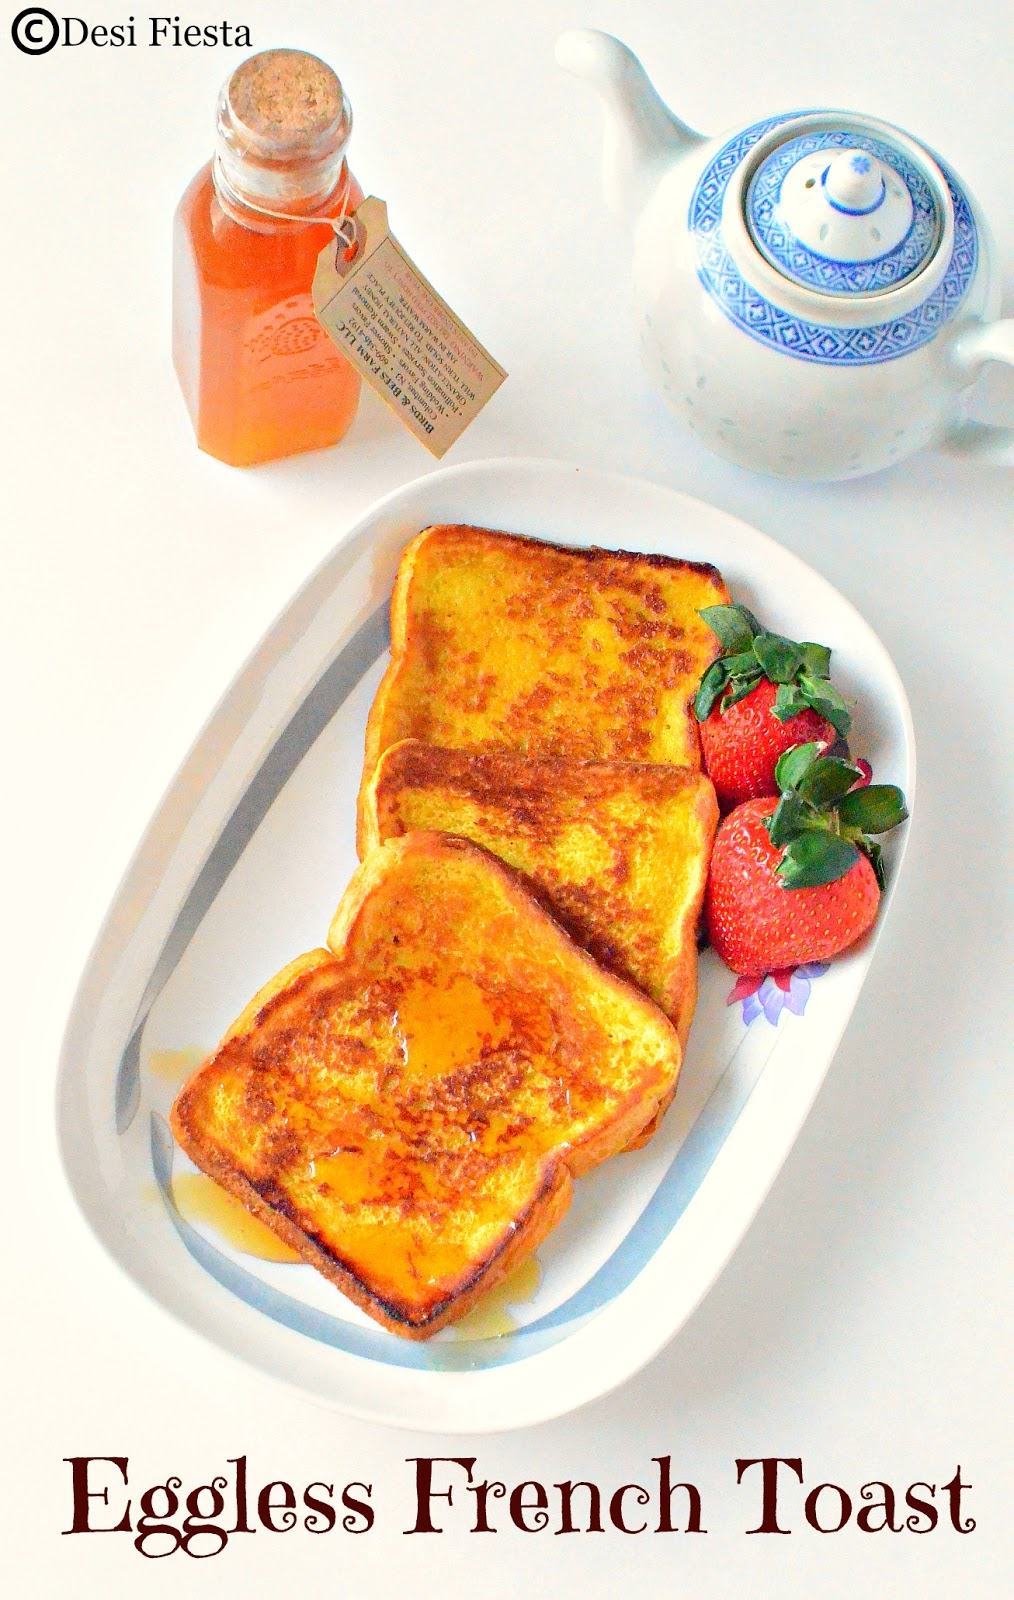 Sweet version French Toaste without Eggs